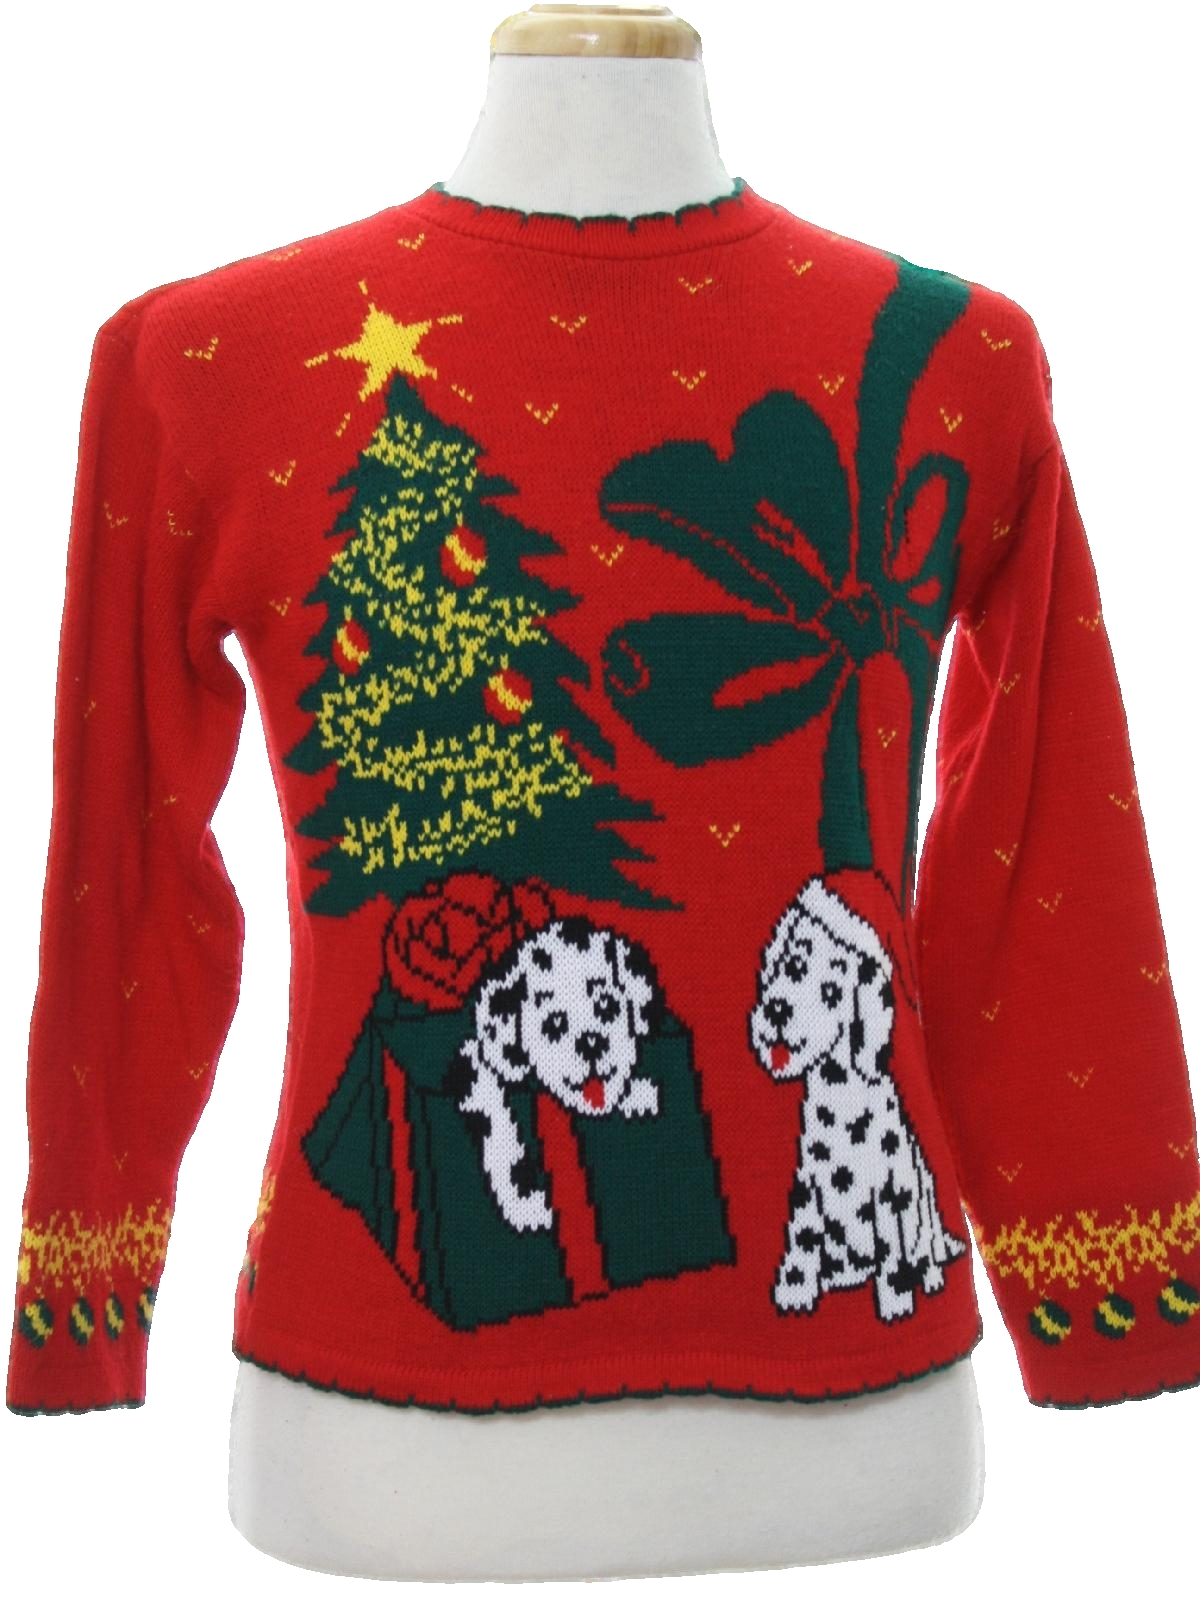 20 Ugly Christmas Sweaters Featuring Dogs To Dazzle With at Holiday ...